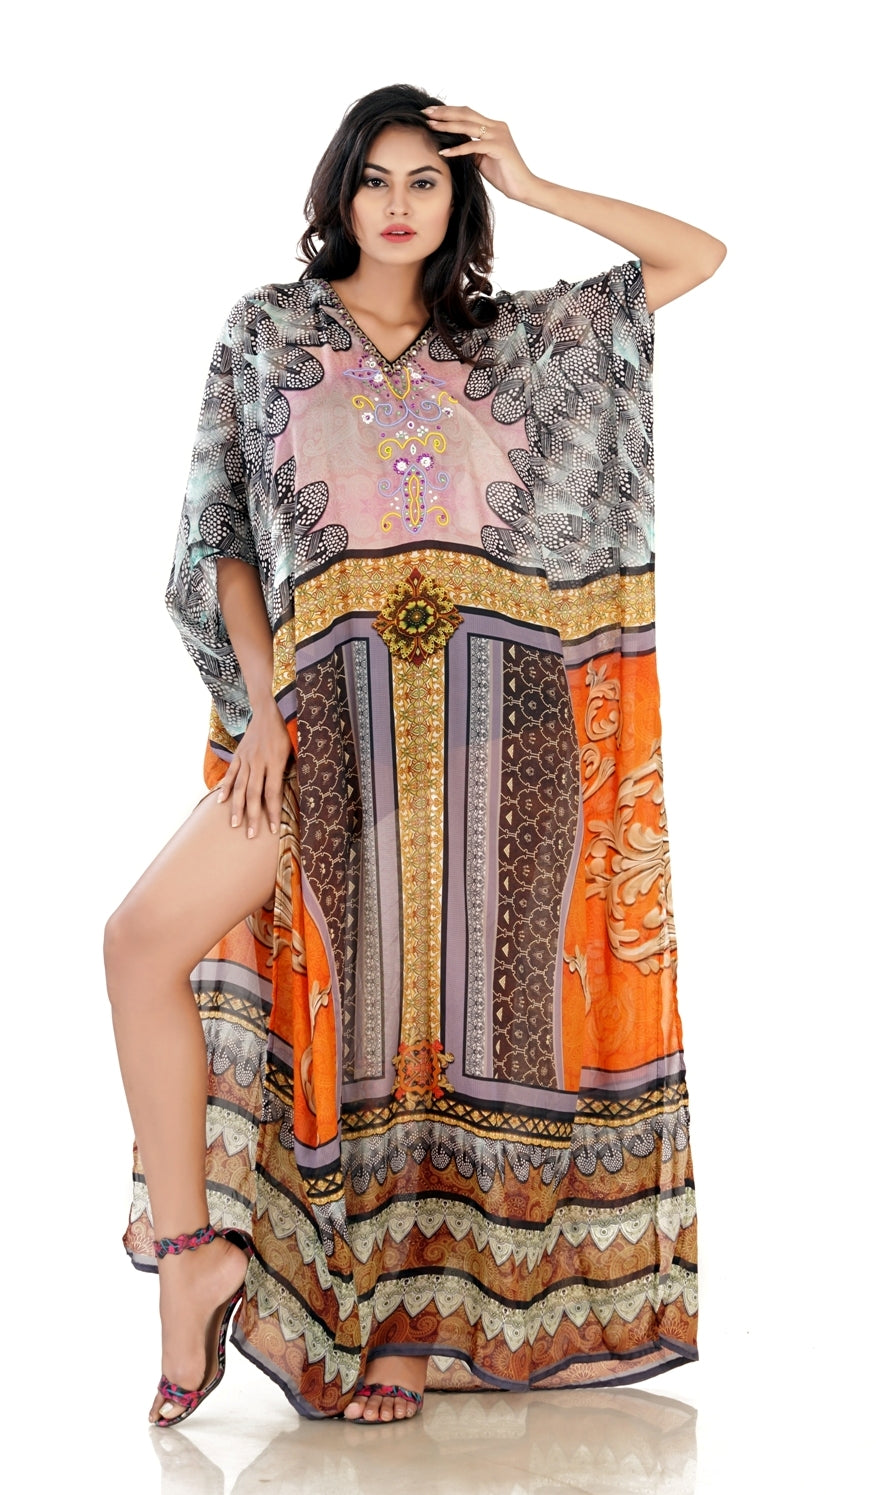 New Style Bold Feathery Silk Kaftan with bottom panel print and split ends vacation beach outfits